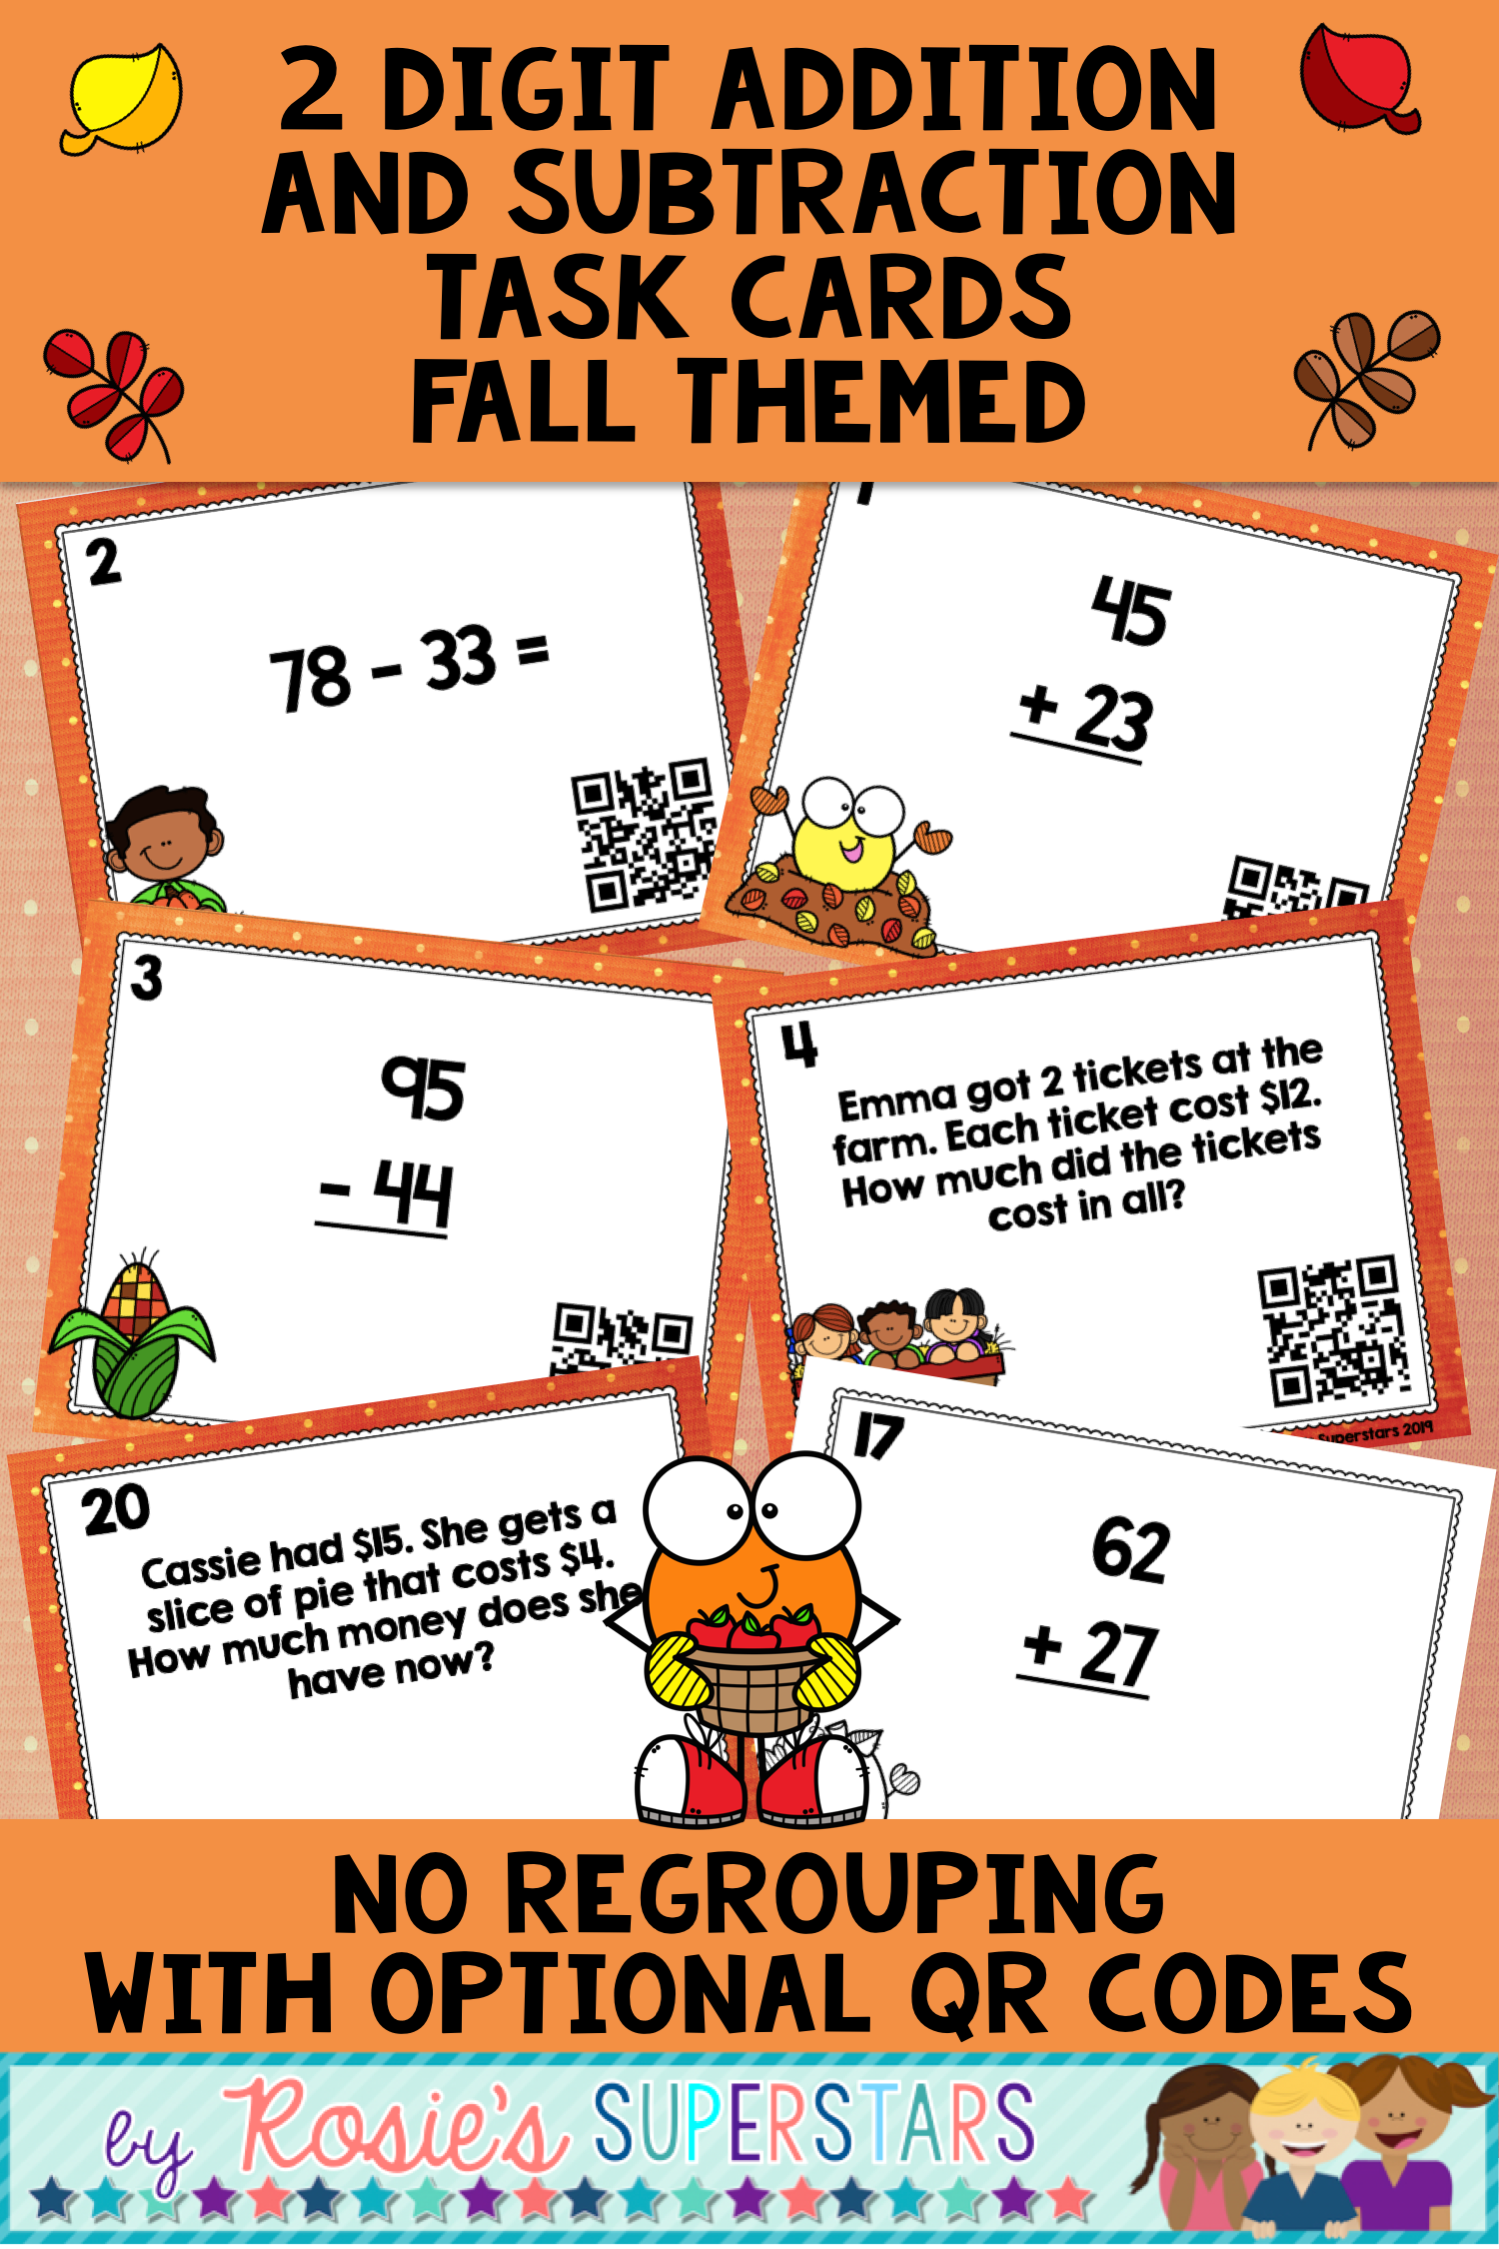 Fall 2 Digit Addition And Subtraction Task Cards With Qr